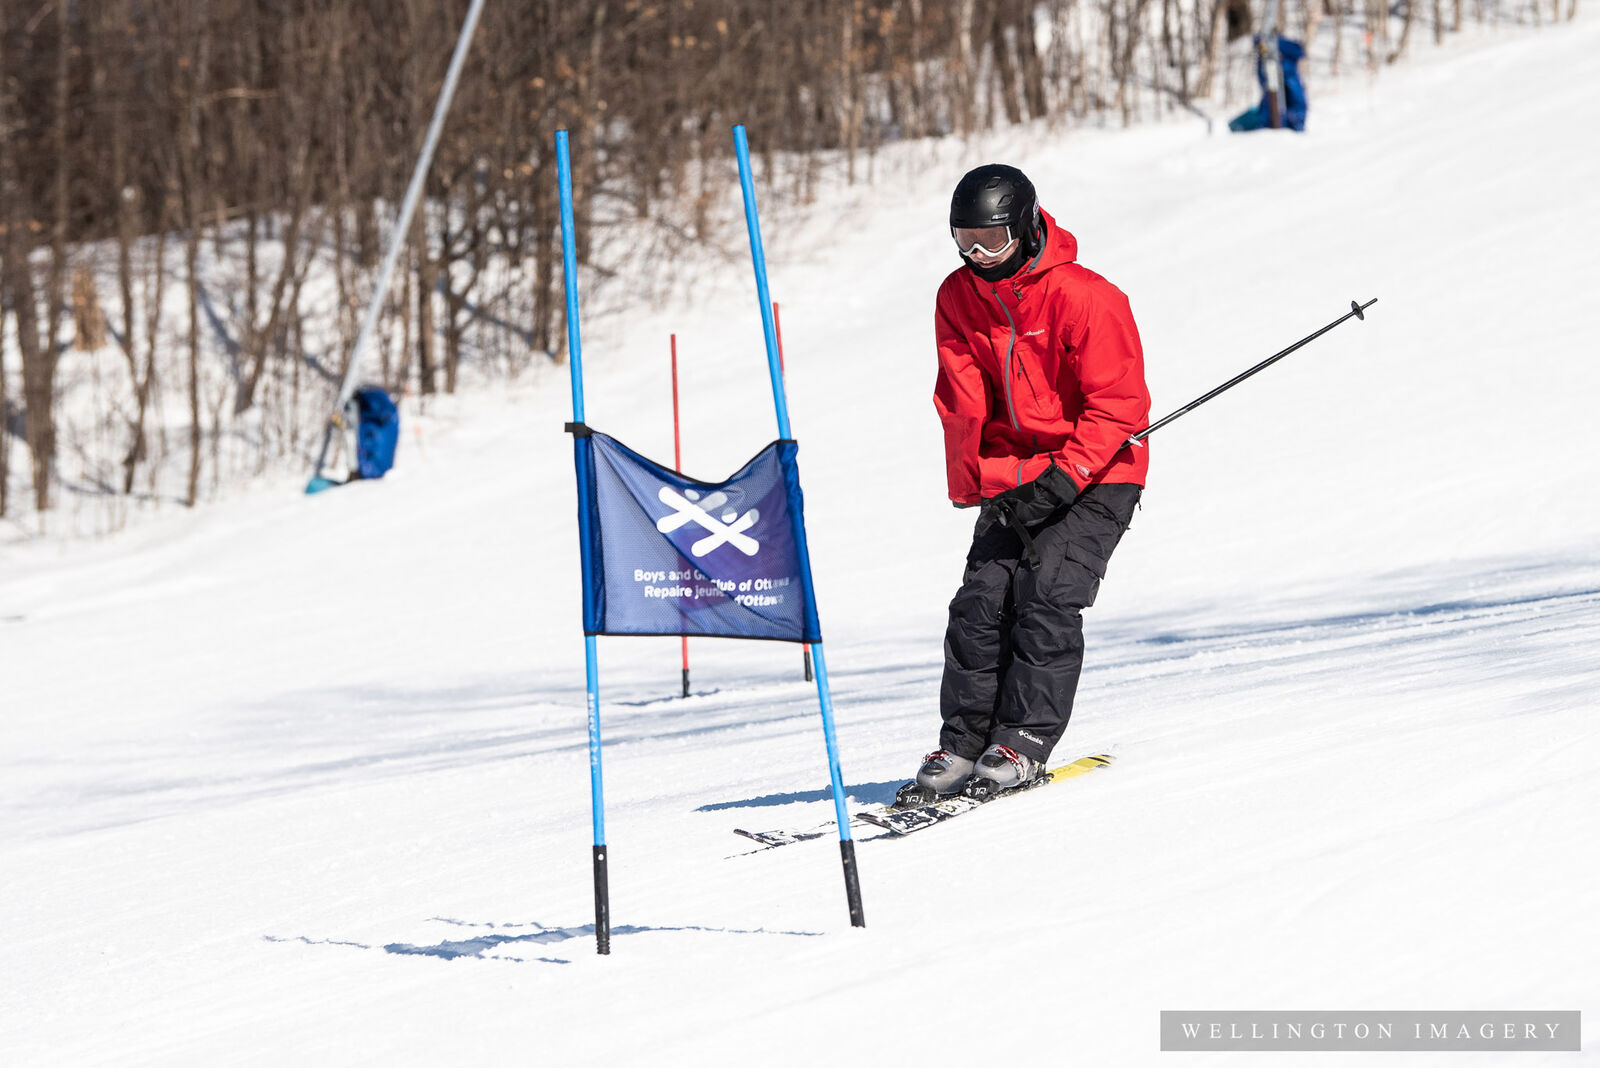 ©WELLINGTONIMAGERY 20190228 142405 BGCO Skiathon 1642 WM 2048px